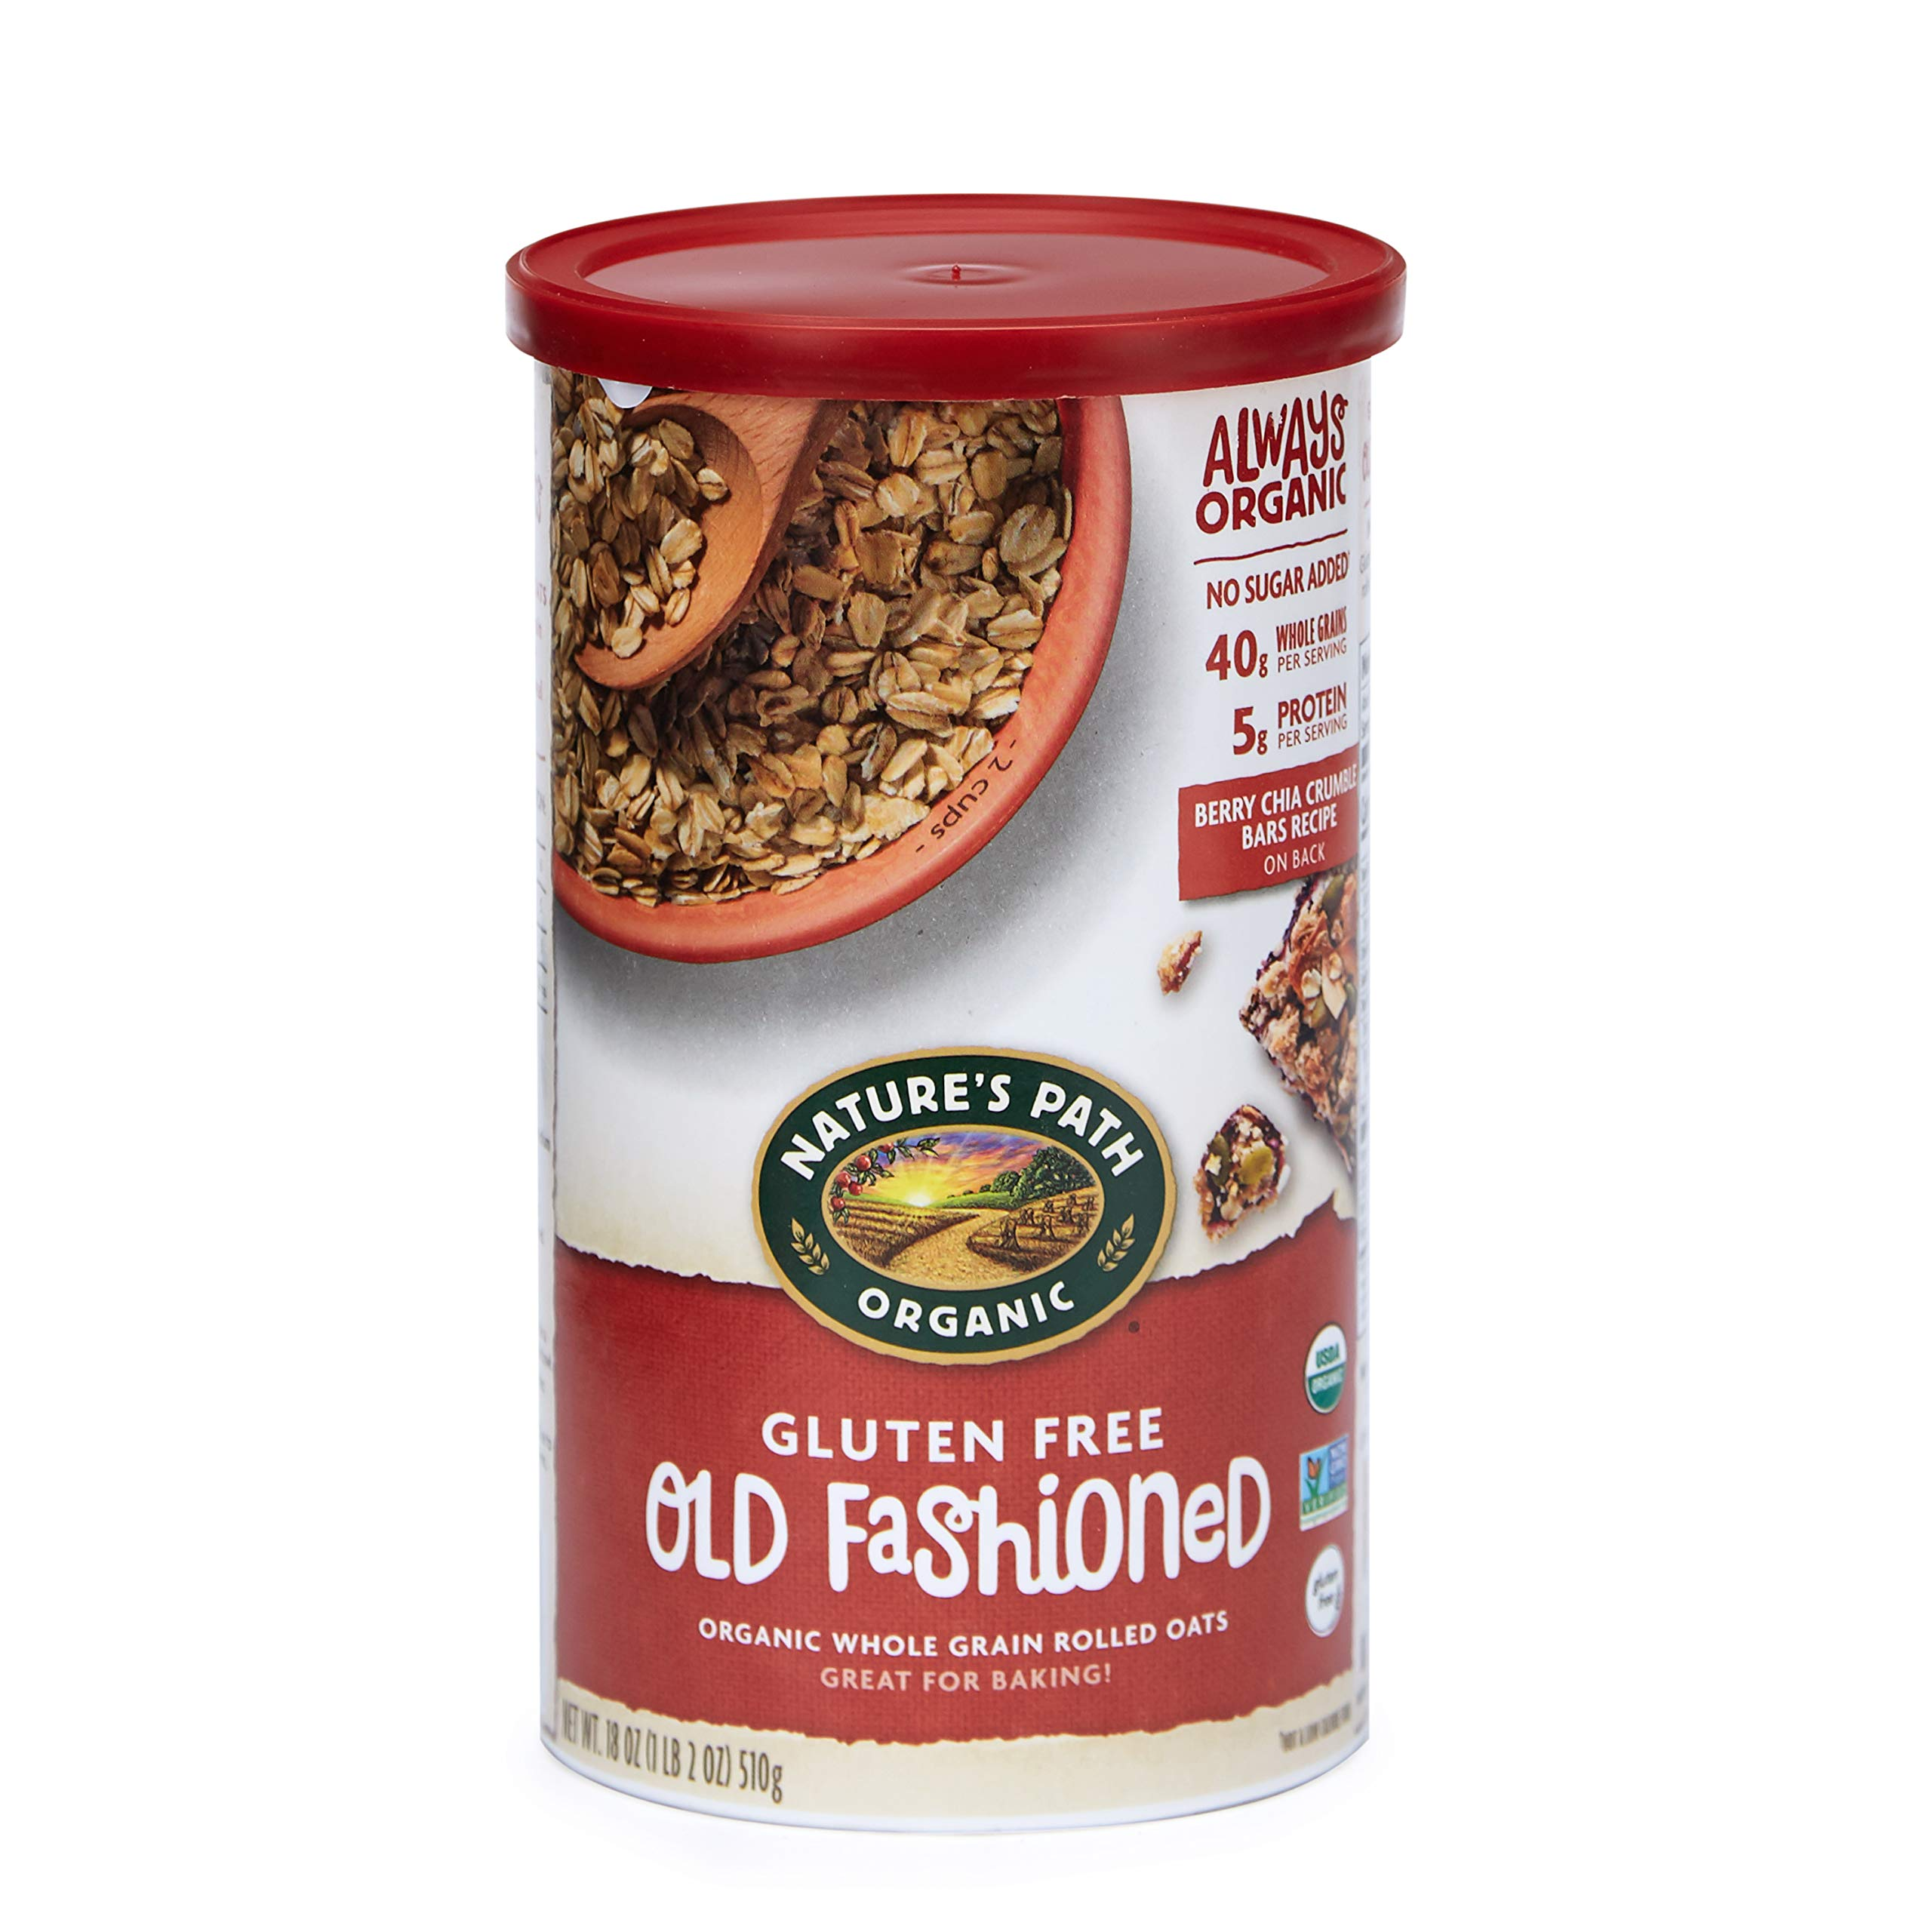 Nature's Path Gluten-Free Whole Rolled Oats, Healthy, Organic & Sugar Free, 1 Canister, 18 Ounces (Pack of 6) by Nature's Path